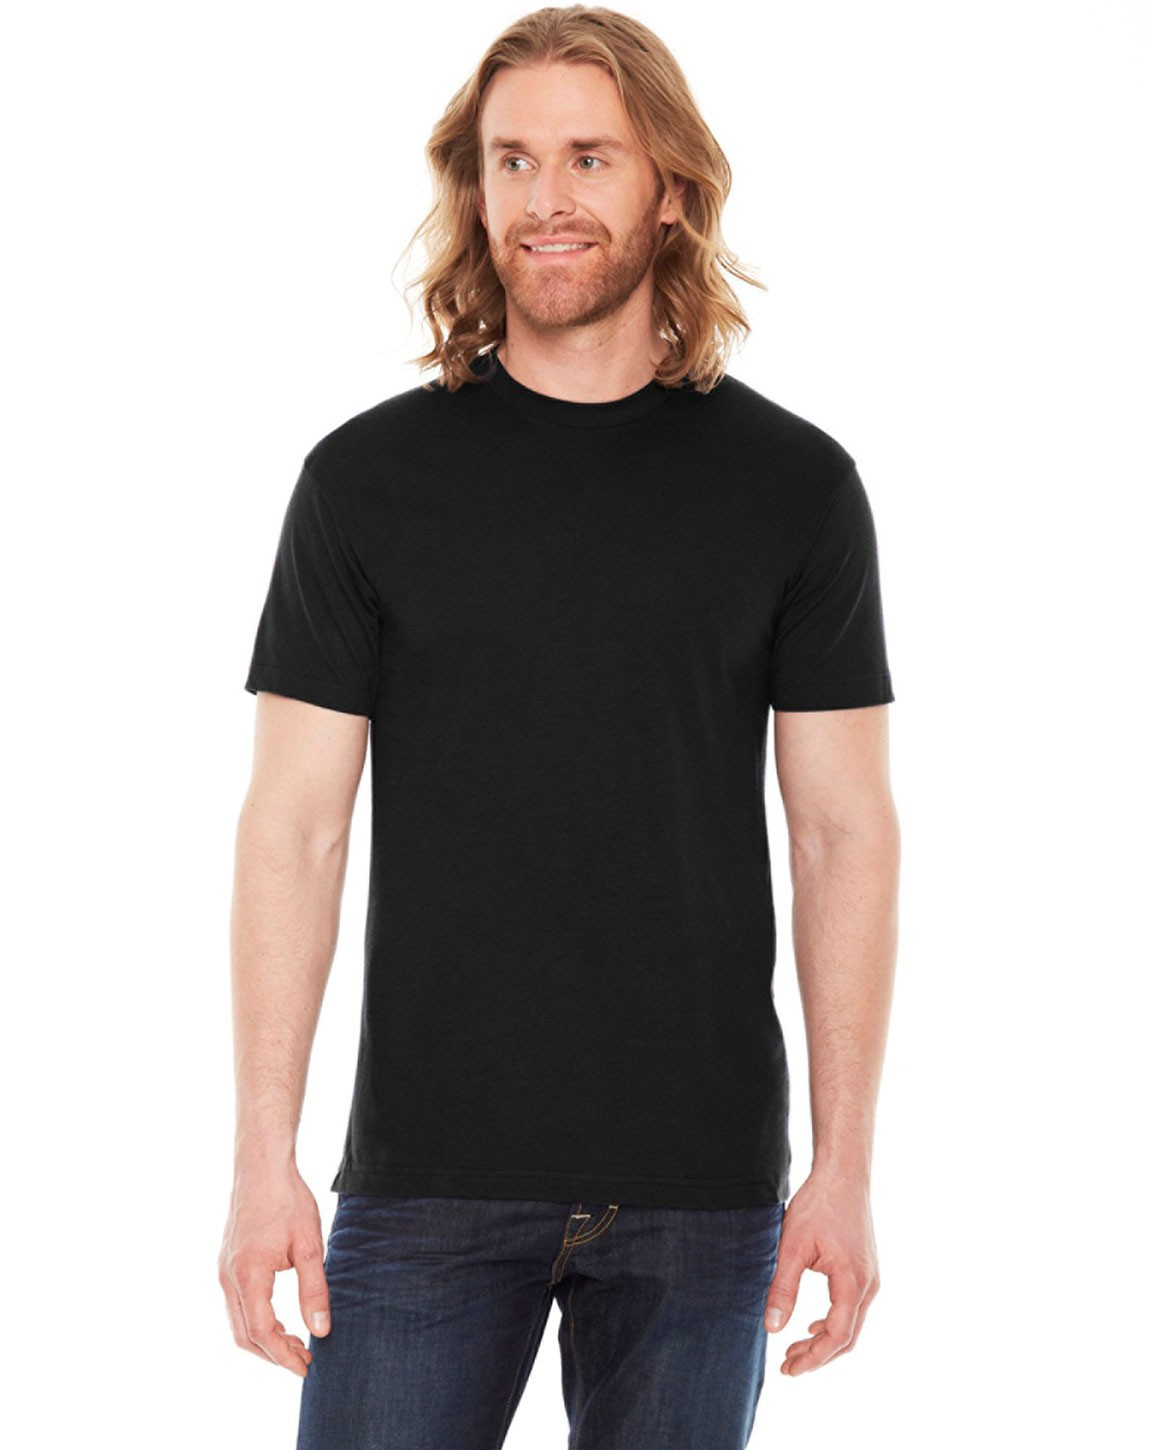 American Apparel BB401W Unisex Poly-Cotton Crew Neck T-Shirt